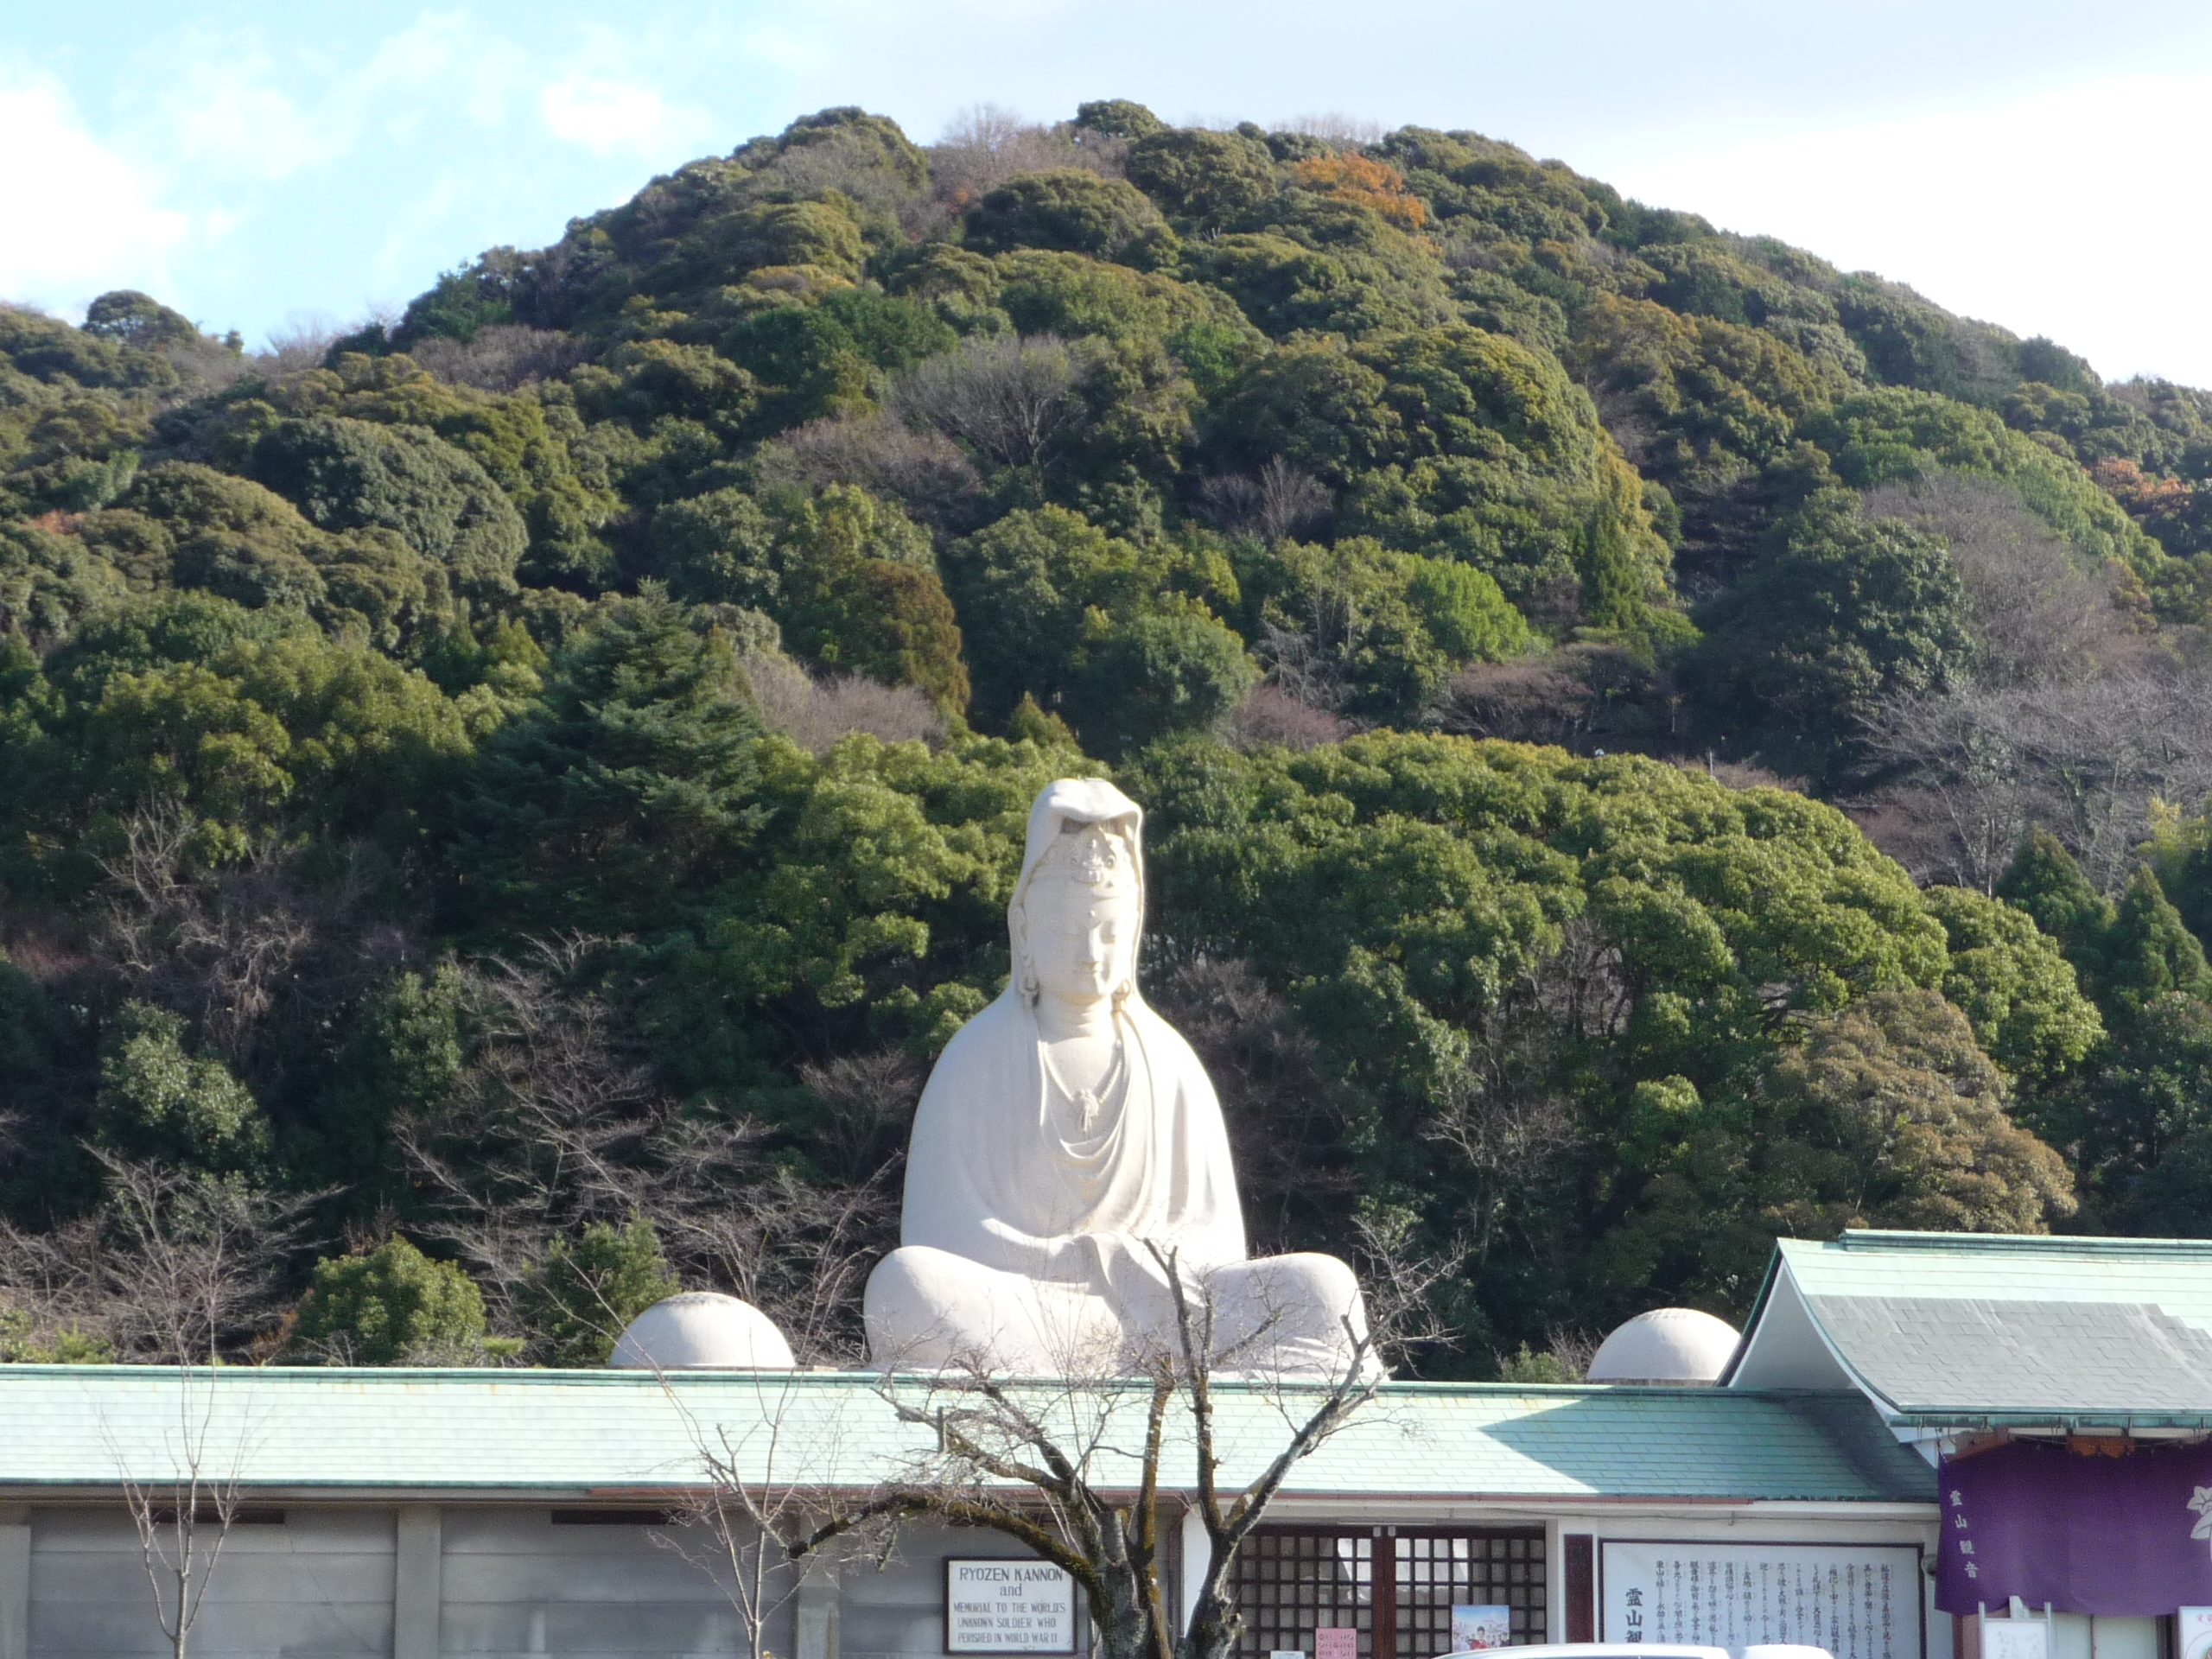 The Giant Buddha in Kamakura